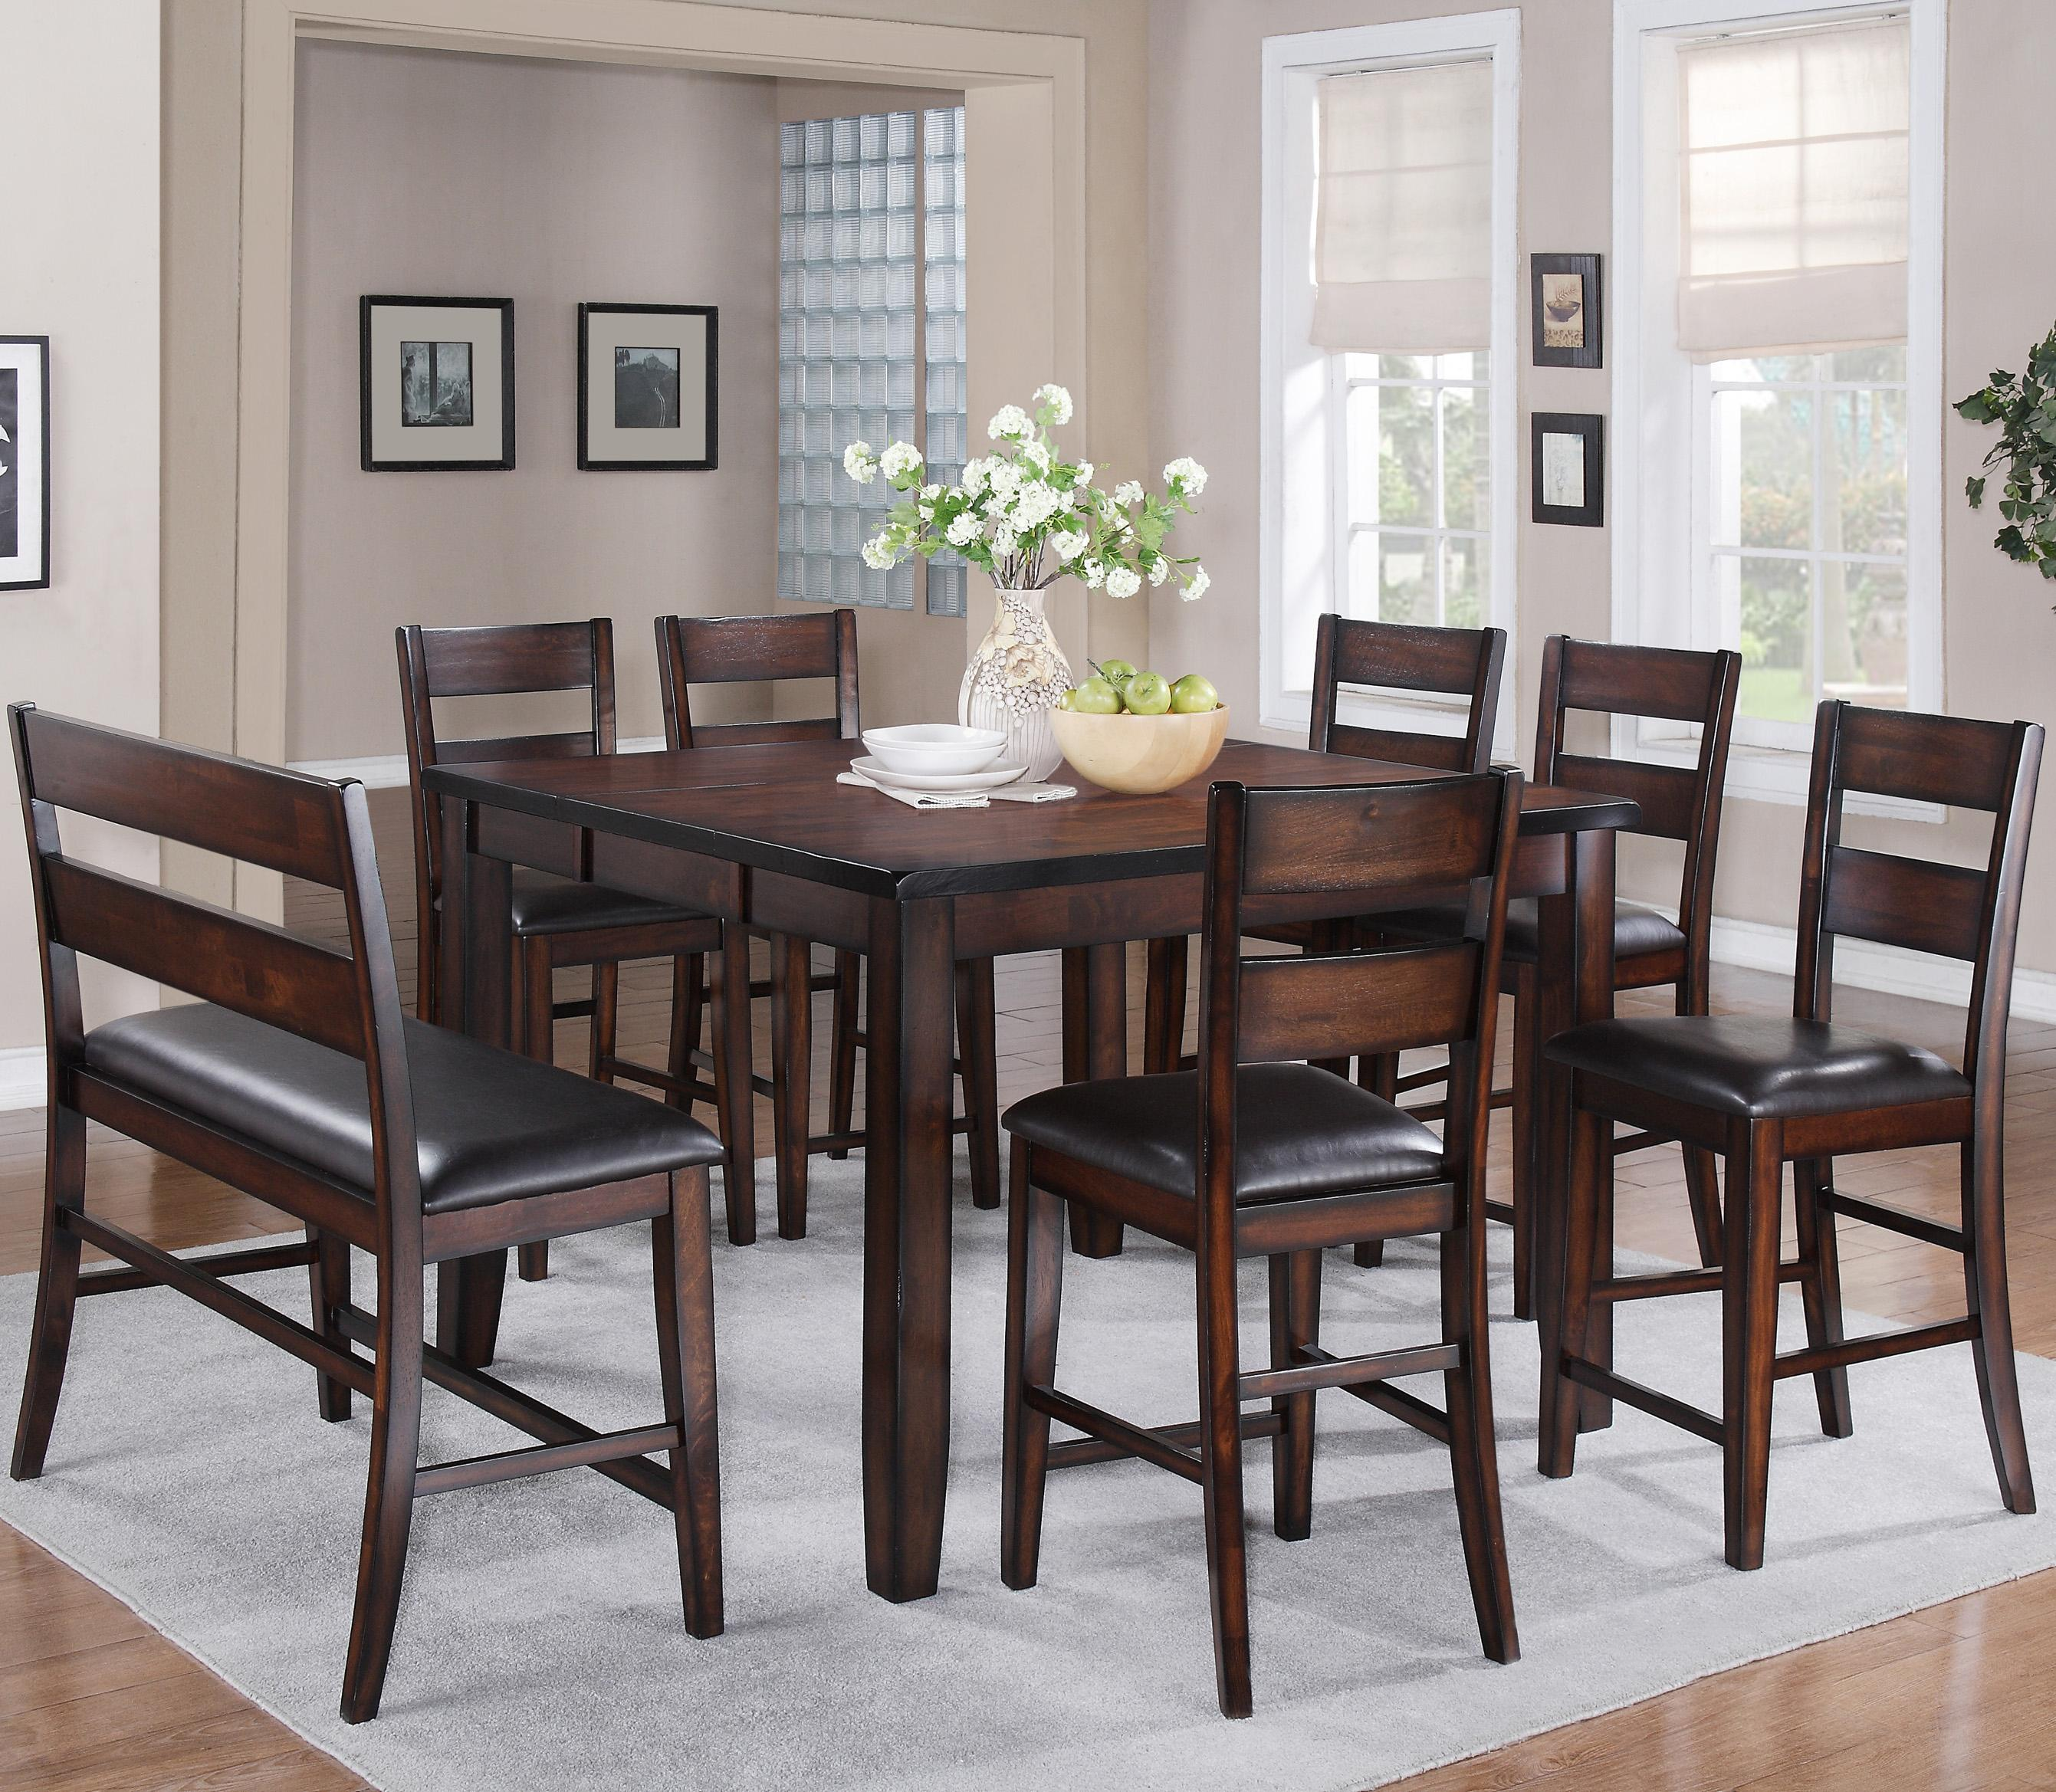 Crown Mark Maldives 8 Piece Dining Set - Item Number: 2760T-5454+6xS-24+Bench